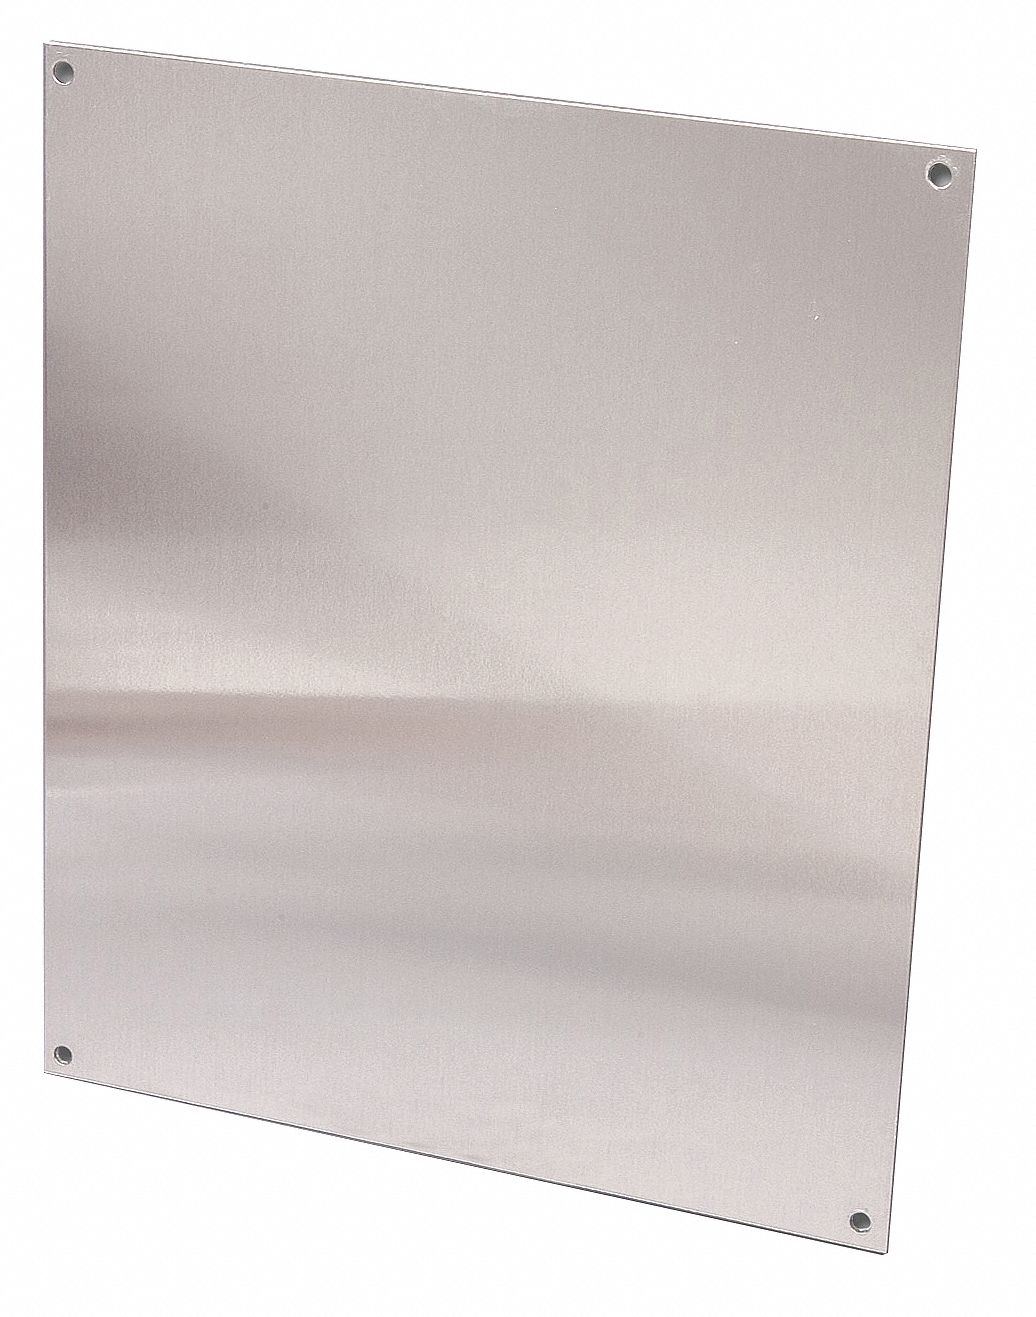 Back Panel, Aluminum, Smooth Finish, For Use With: Any Enclosure, 1 EA